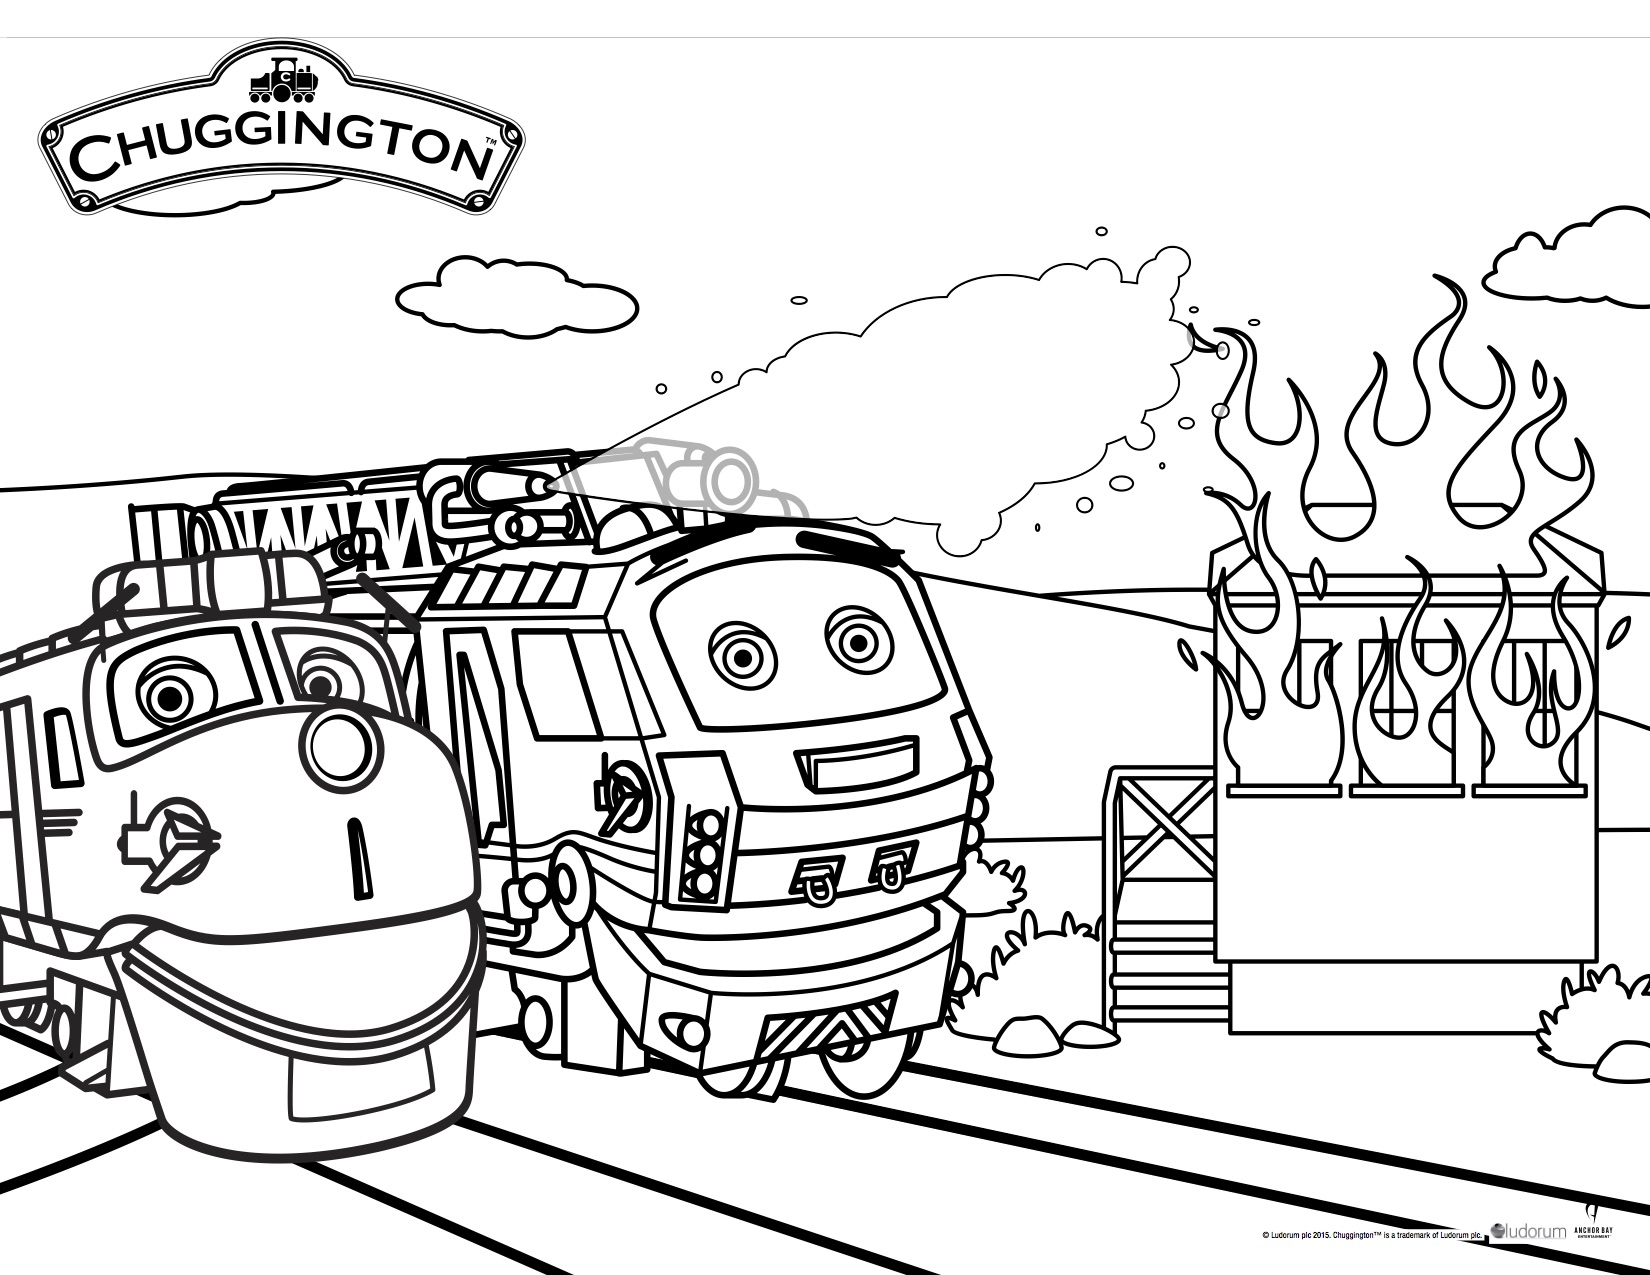 Chuggington coloring pages to download